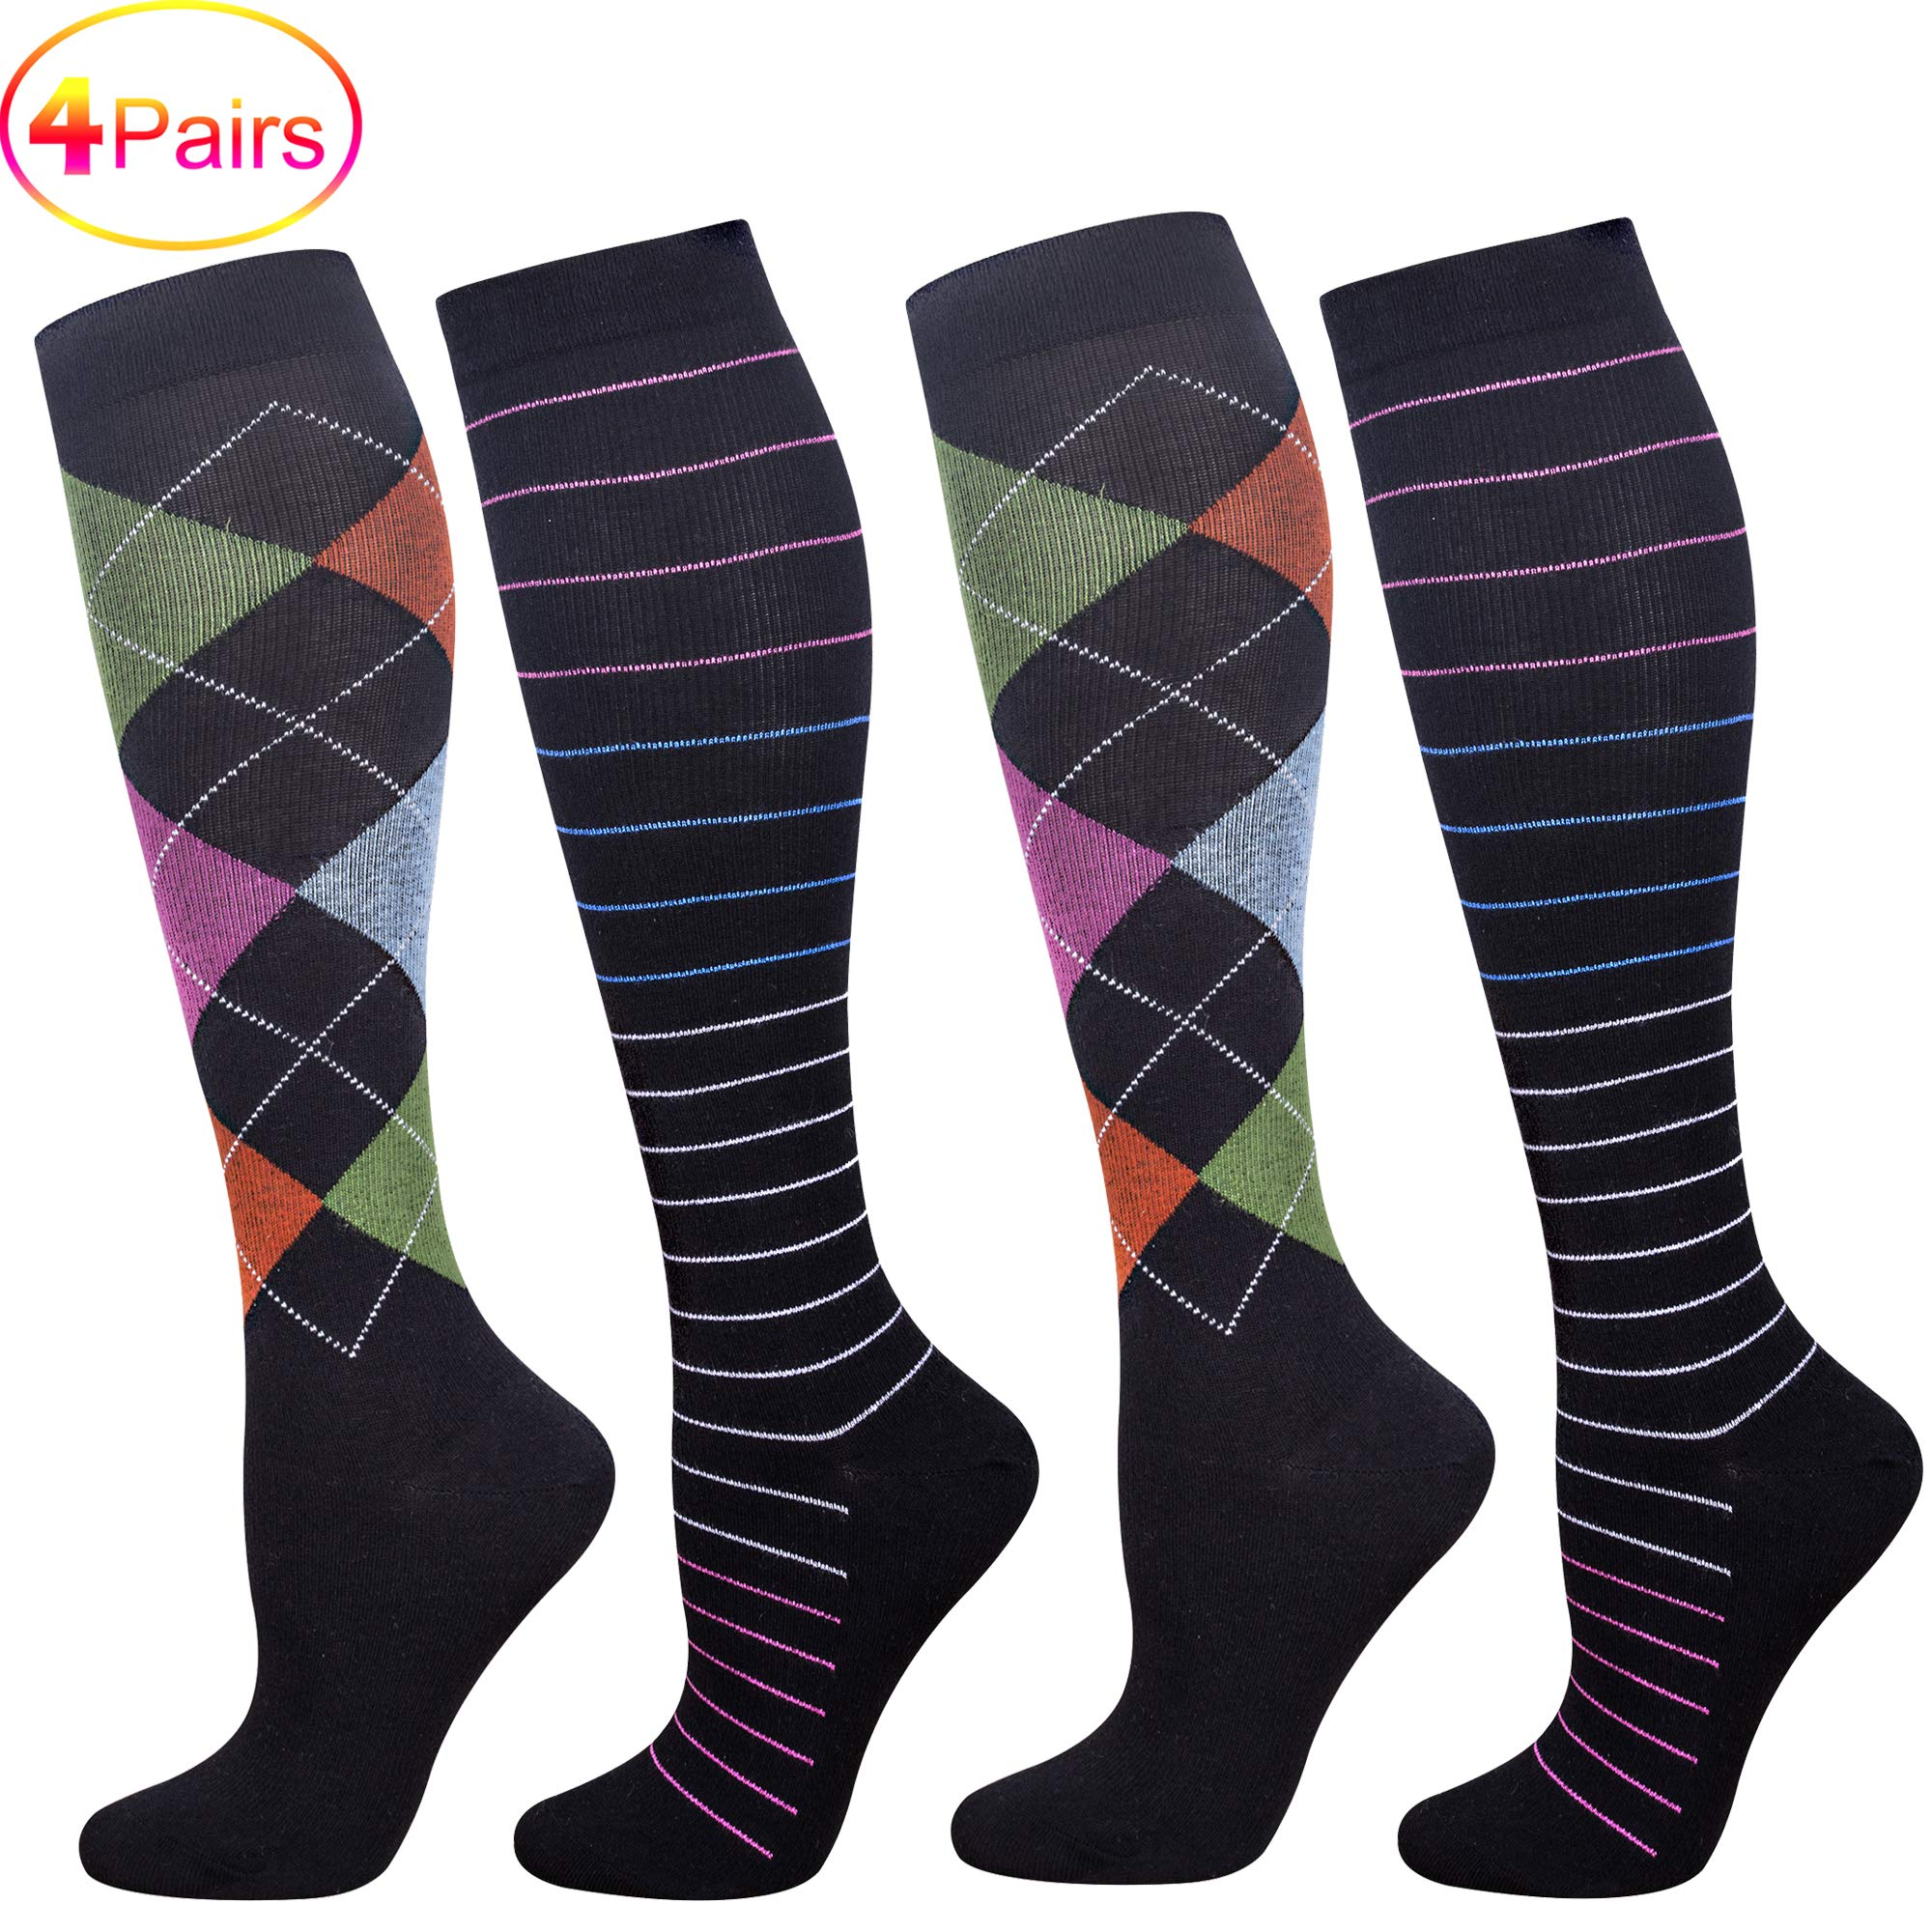 Compression Socks for Women with Firm Medical Grade(20-30 mmHg), Fits for Nurse, Pregnancy, Flight Travel and Varicose Veins(2 Pairs) (Pack G 4 Pairs, L/XL)